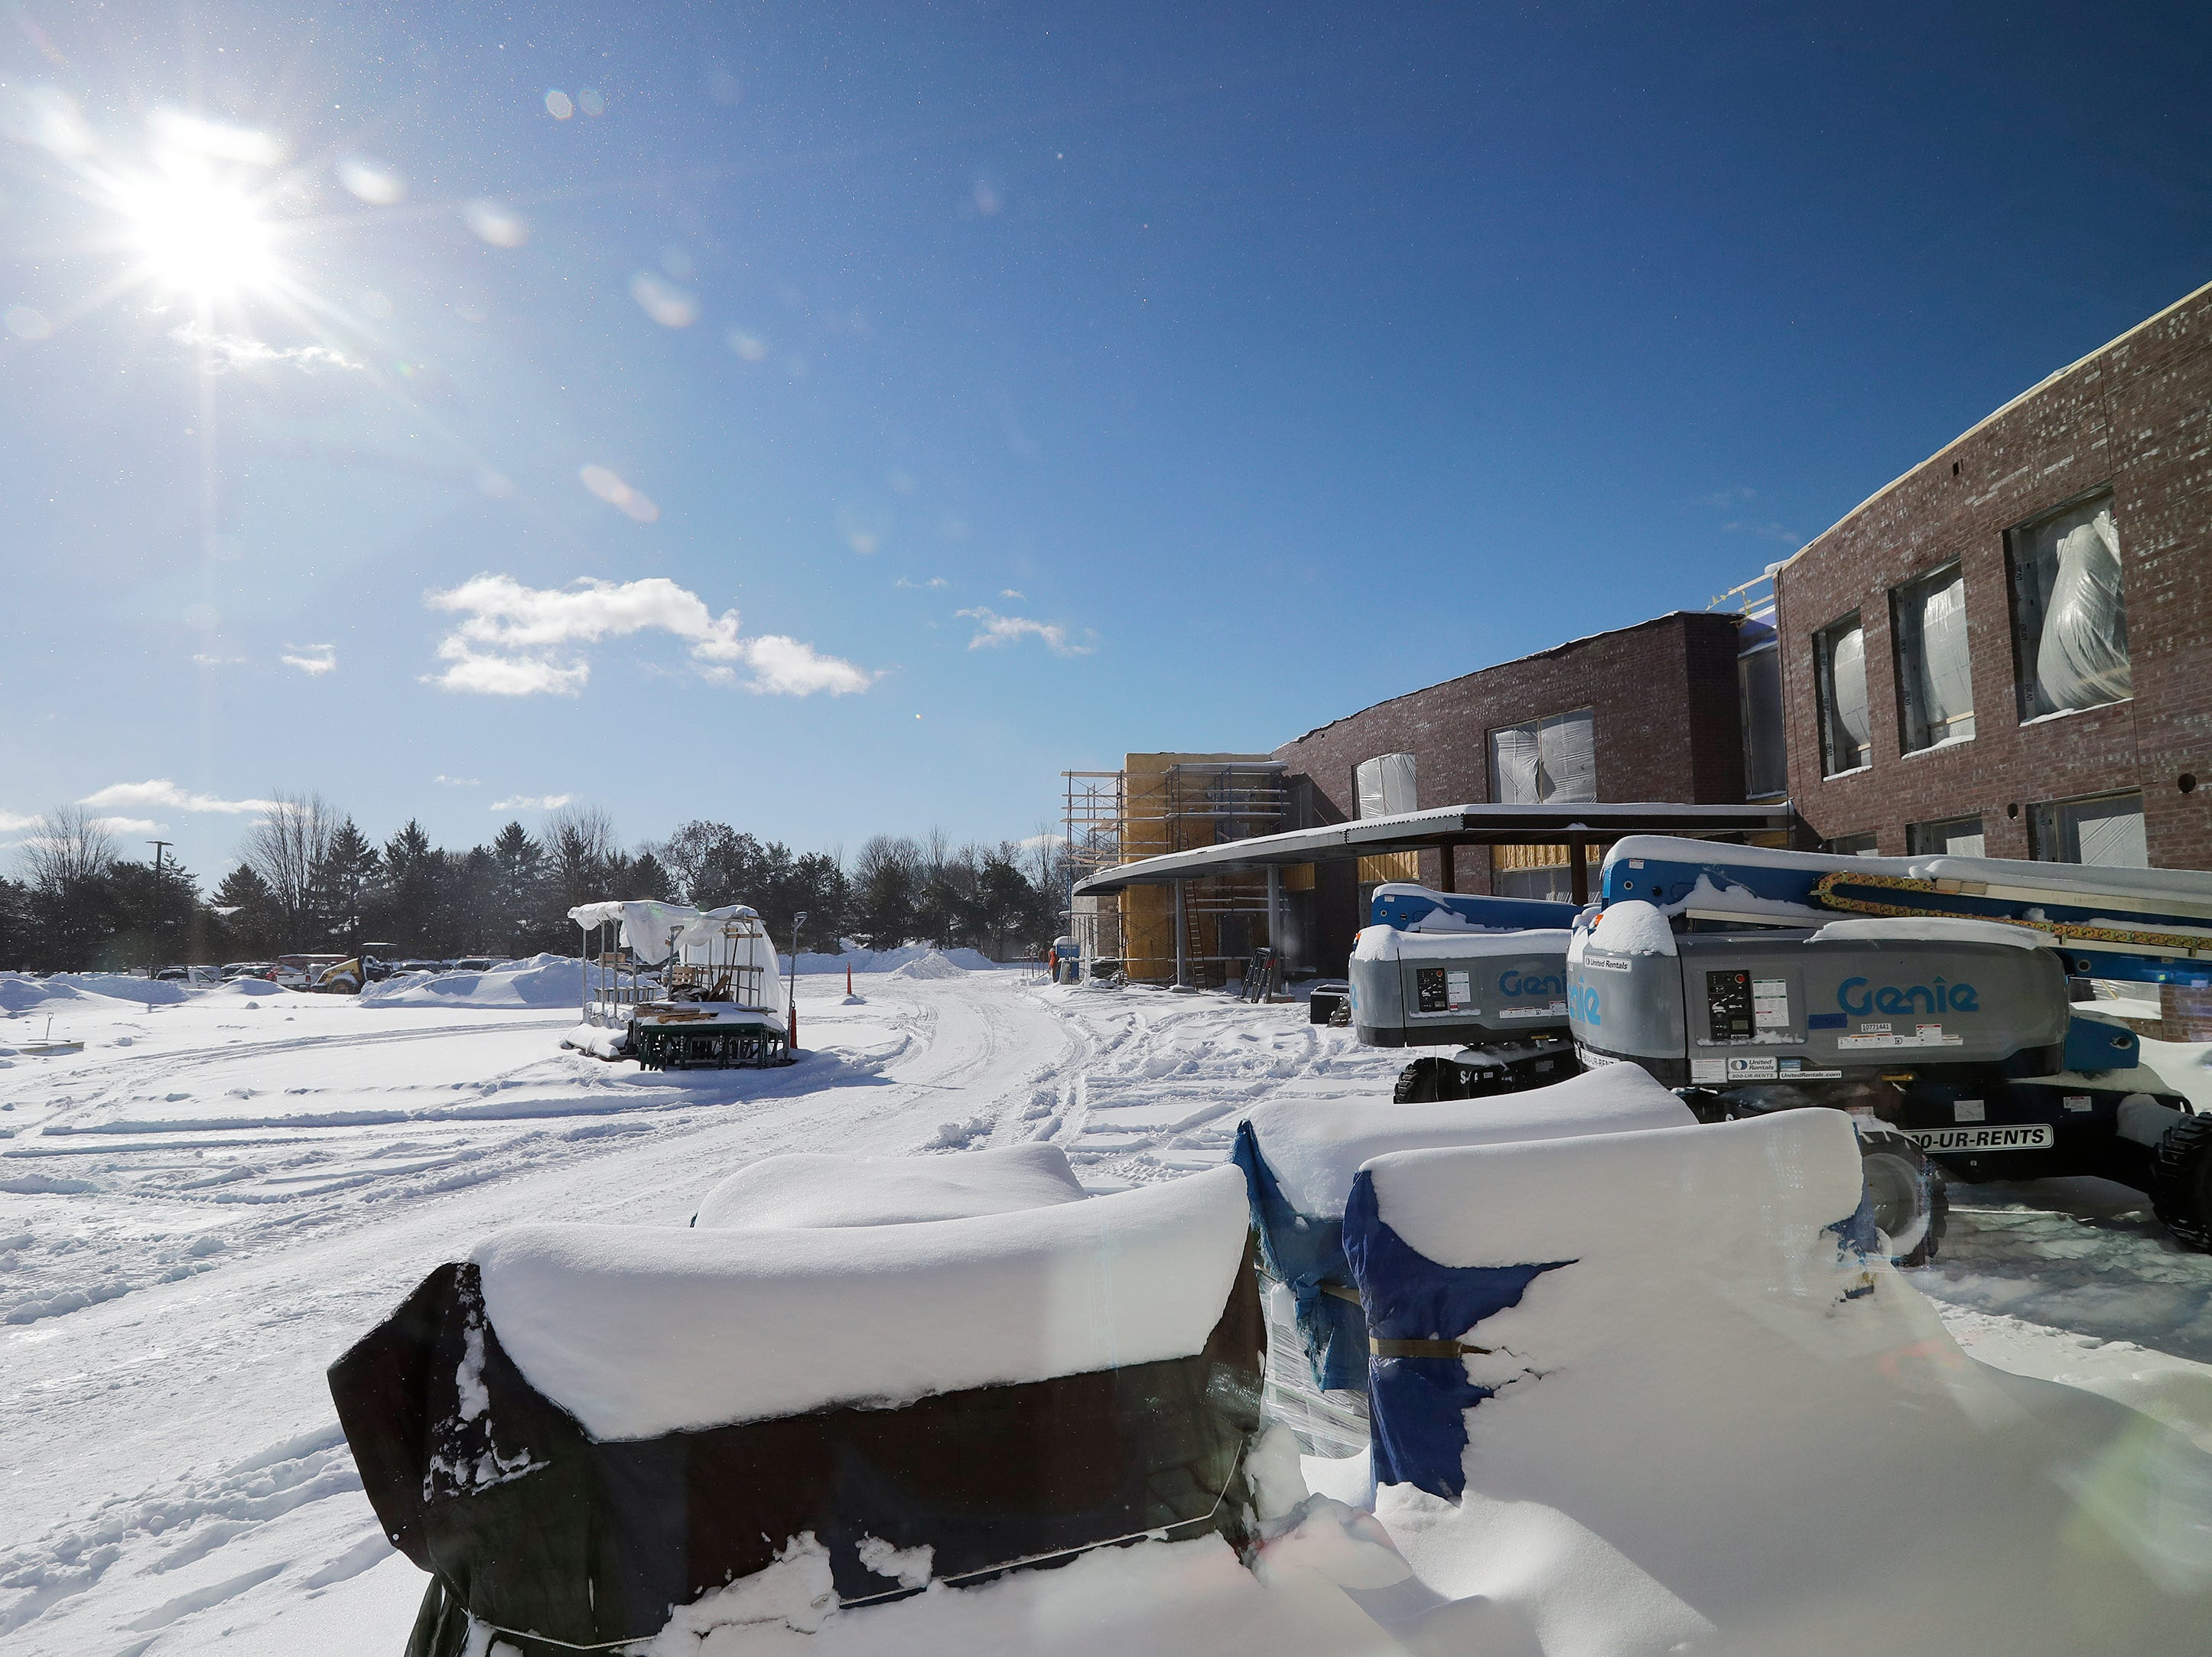 Construction work is ongoing at the new Baird Elementary School, shown on Wednesday, February 13, 2019 in Green Bay, Wis.